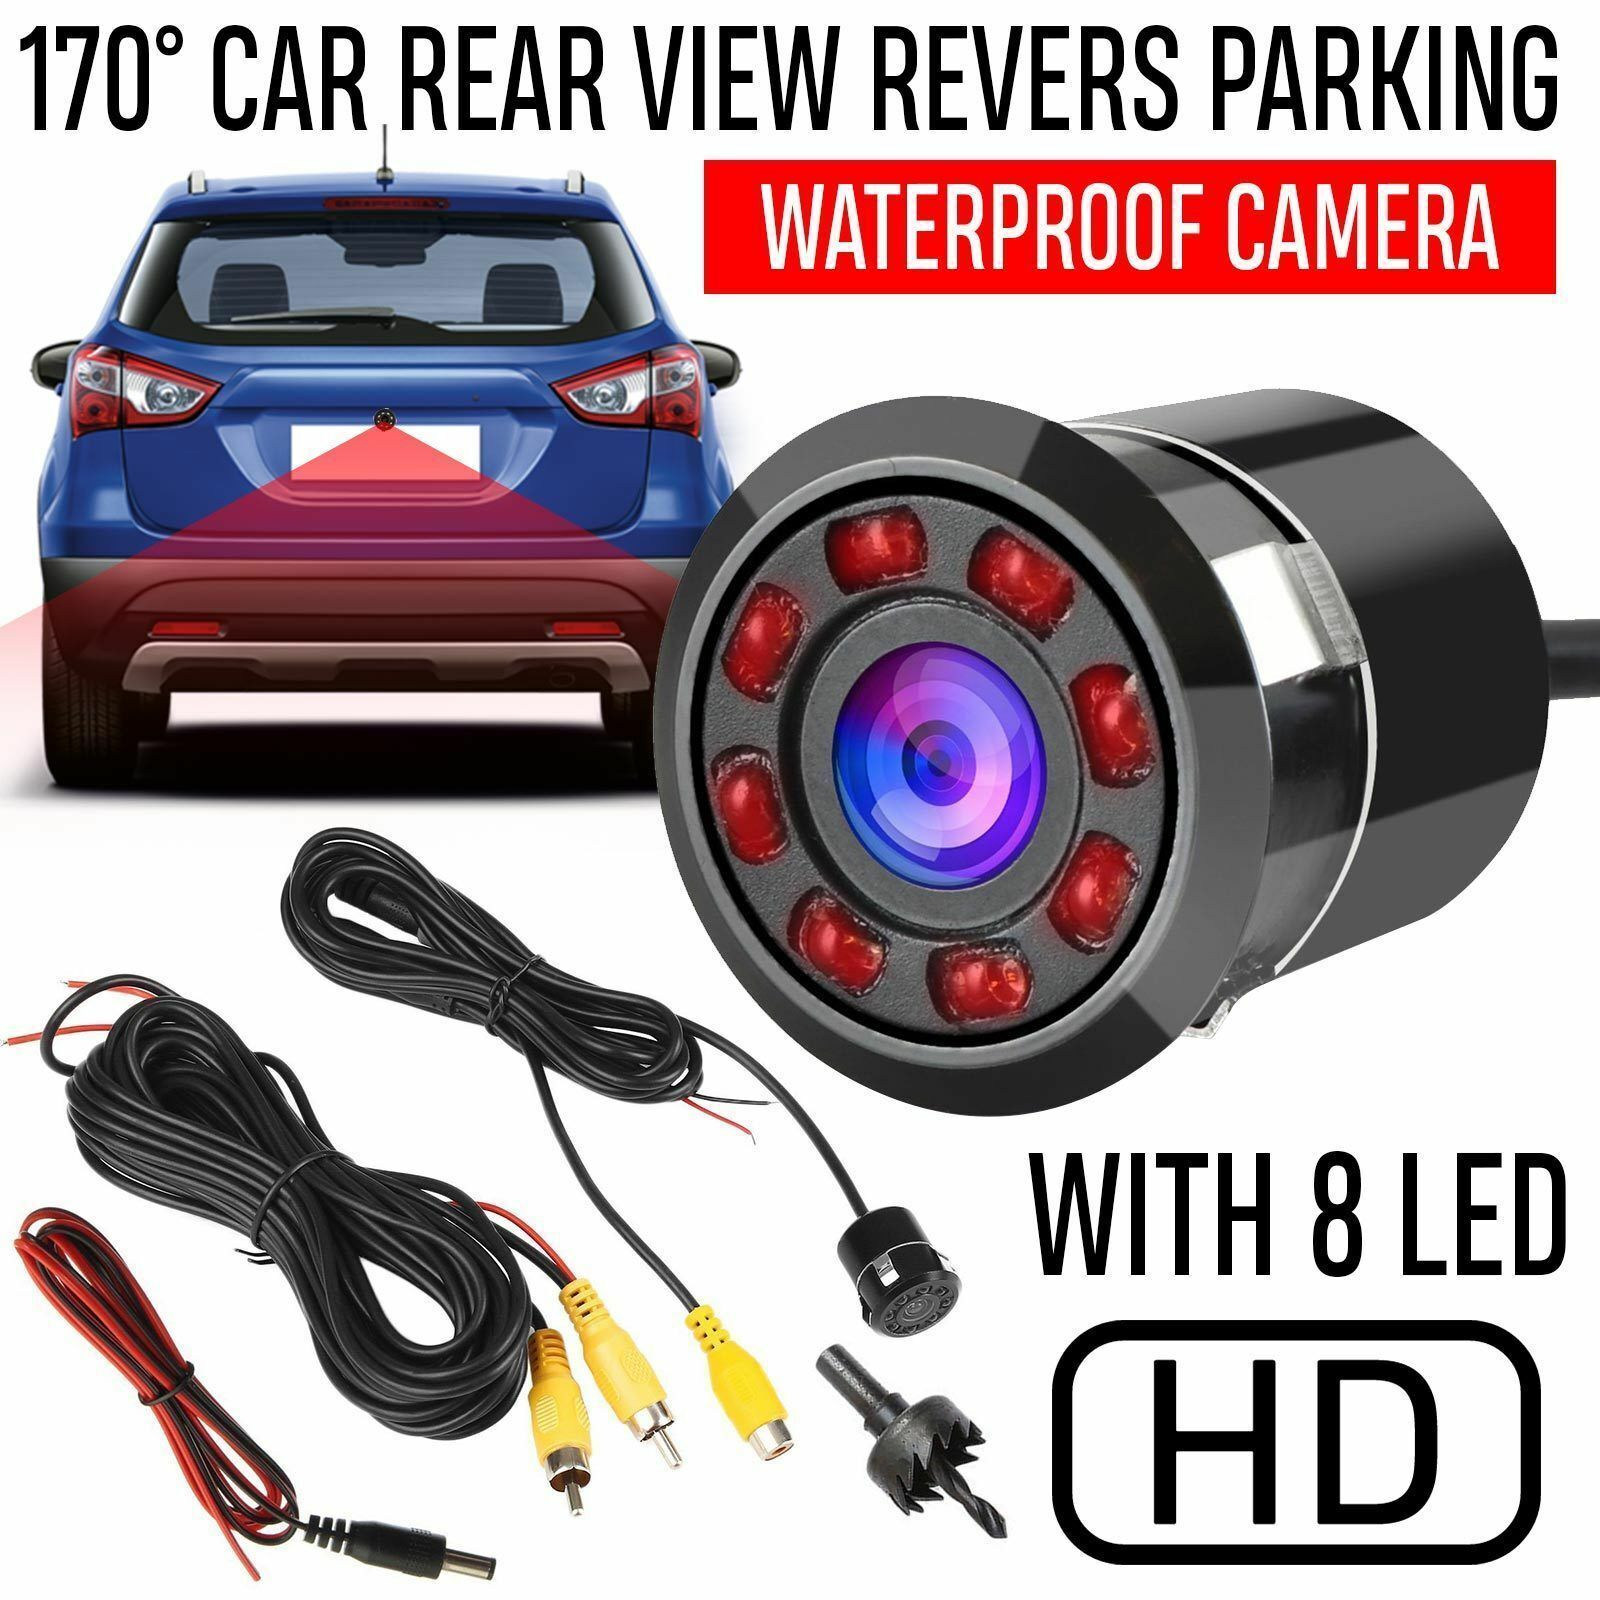 170 Degree 8 LED Lights Night Vision Rear View Camera Parking Backup Assistant